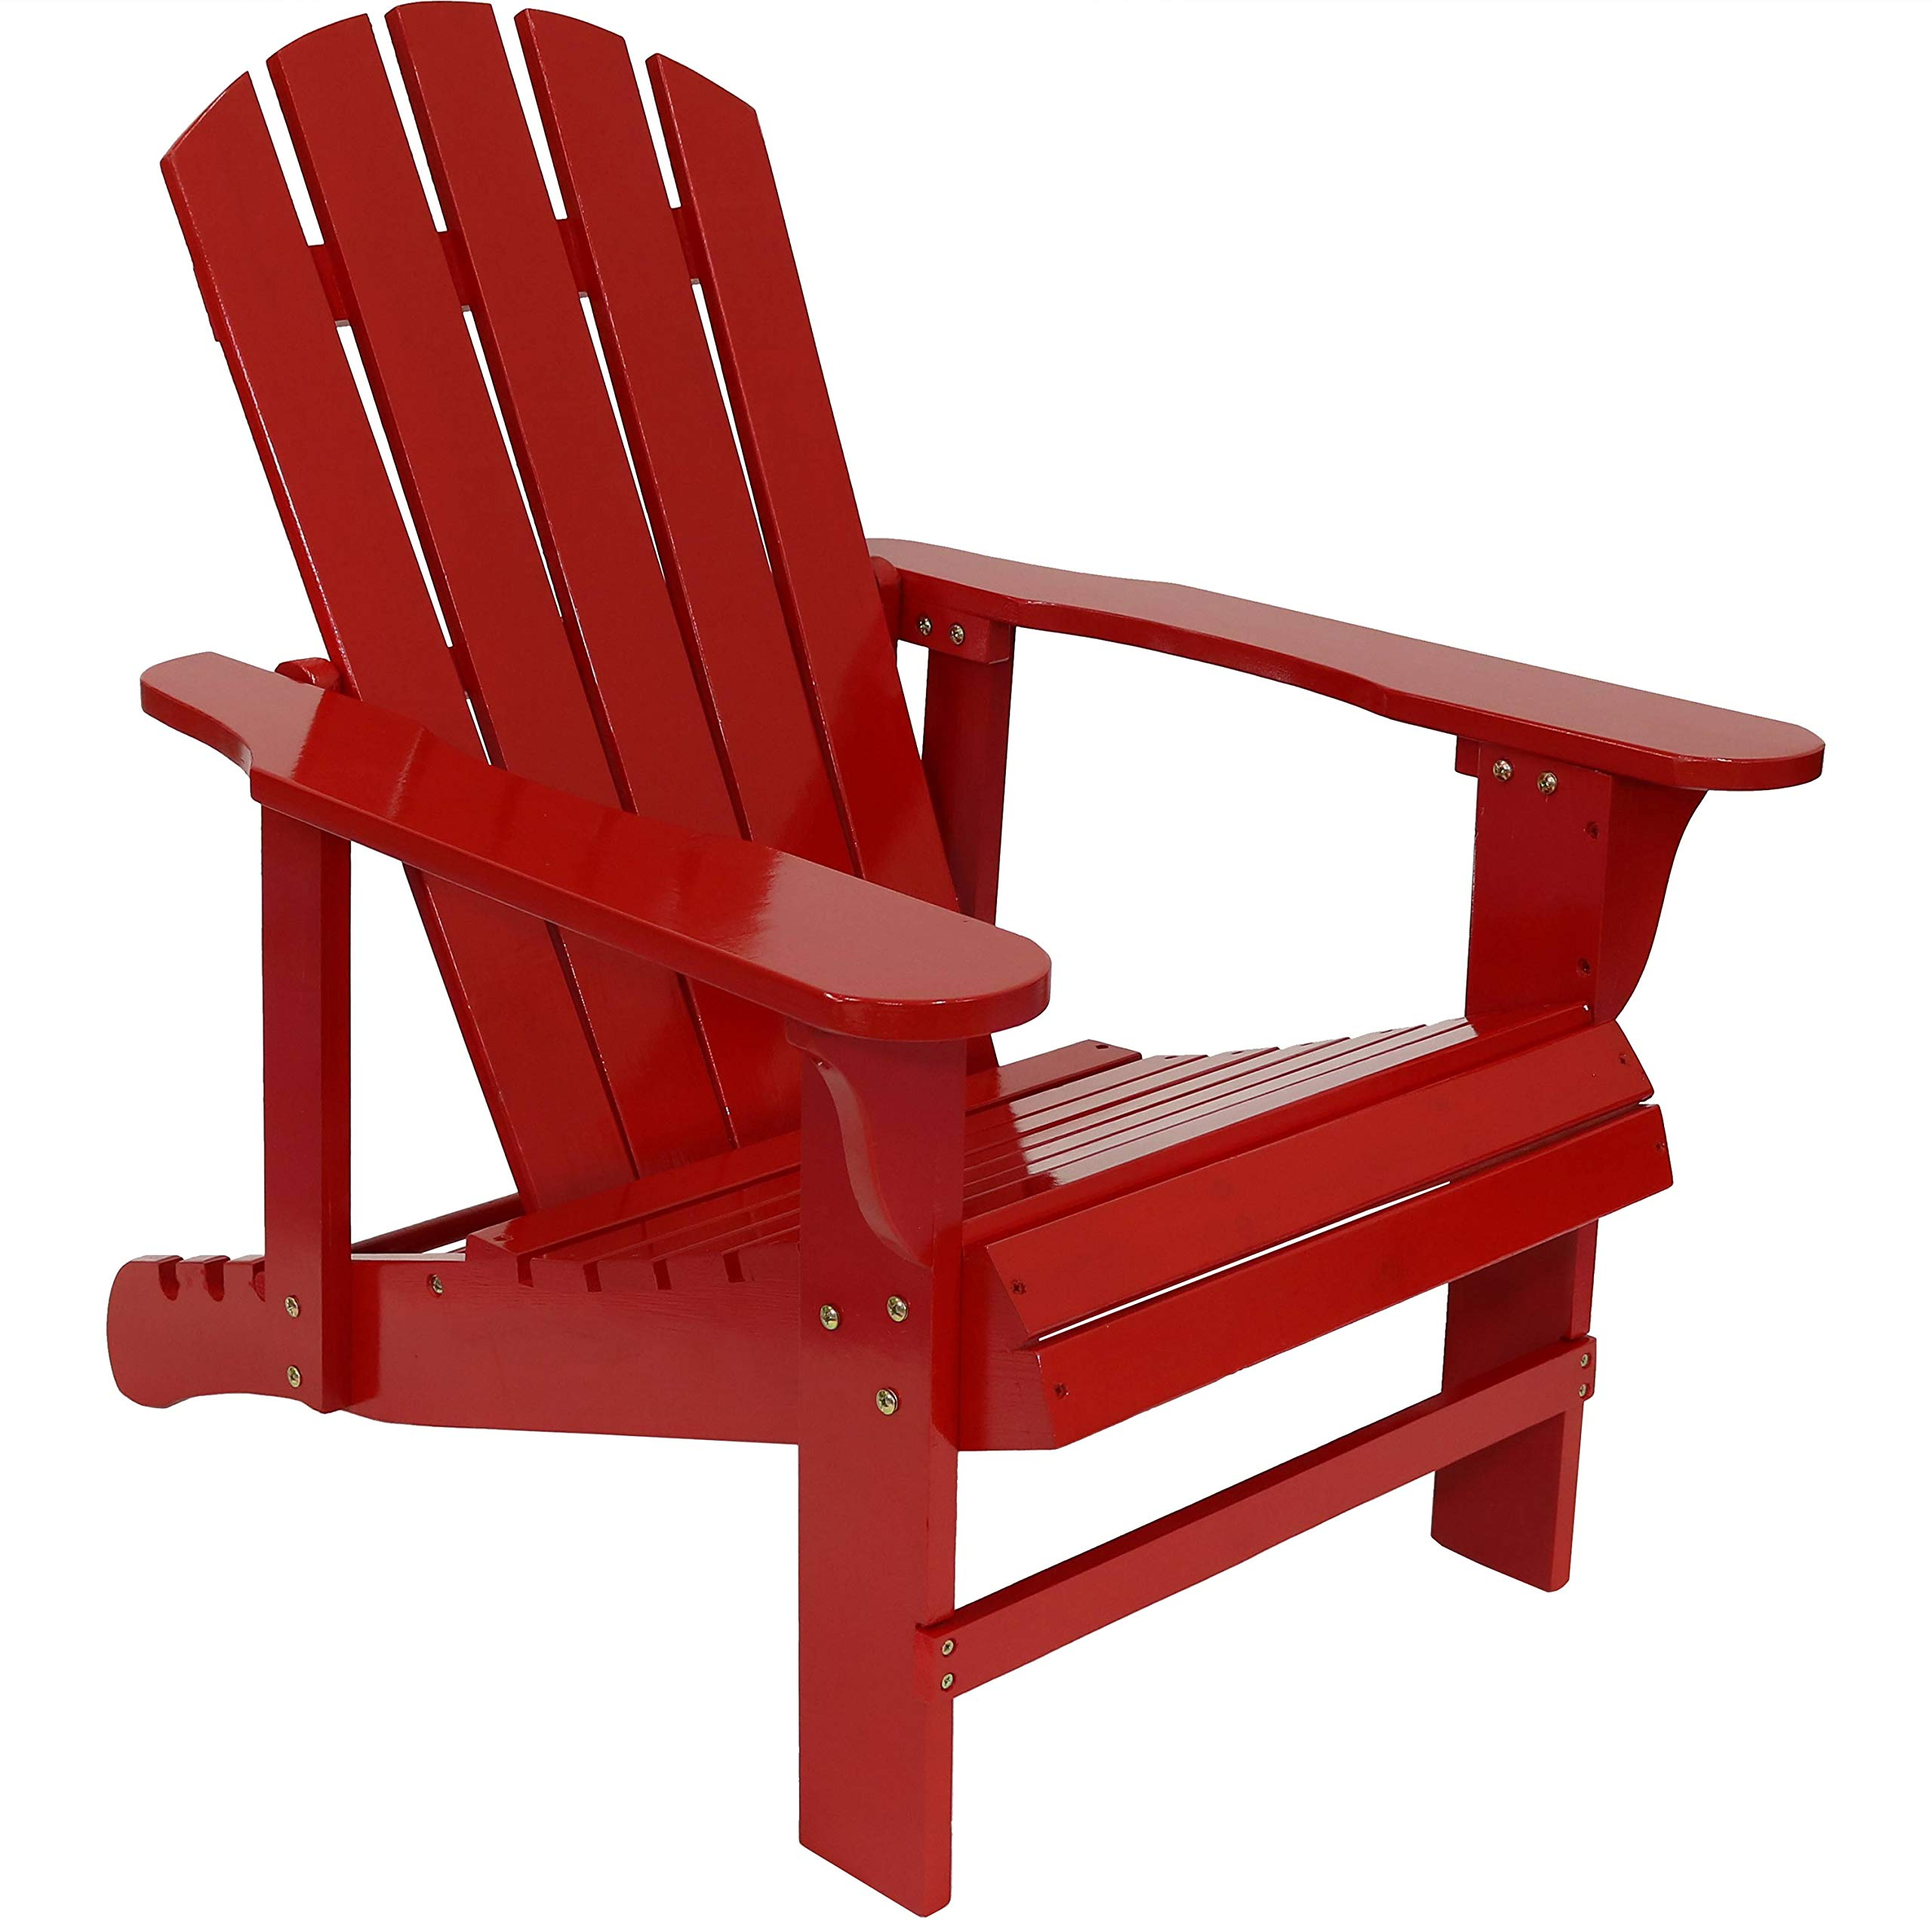 Sunnydaze Wooden Outdoor Adirondack Chair with Adjustable Backrest, 250-Pound Capacity, Red by Sunnydaze Decor